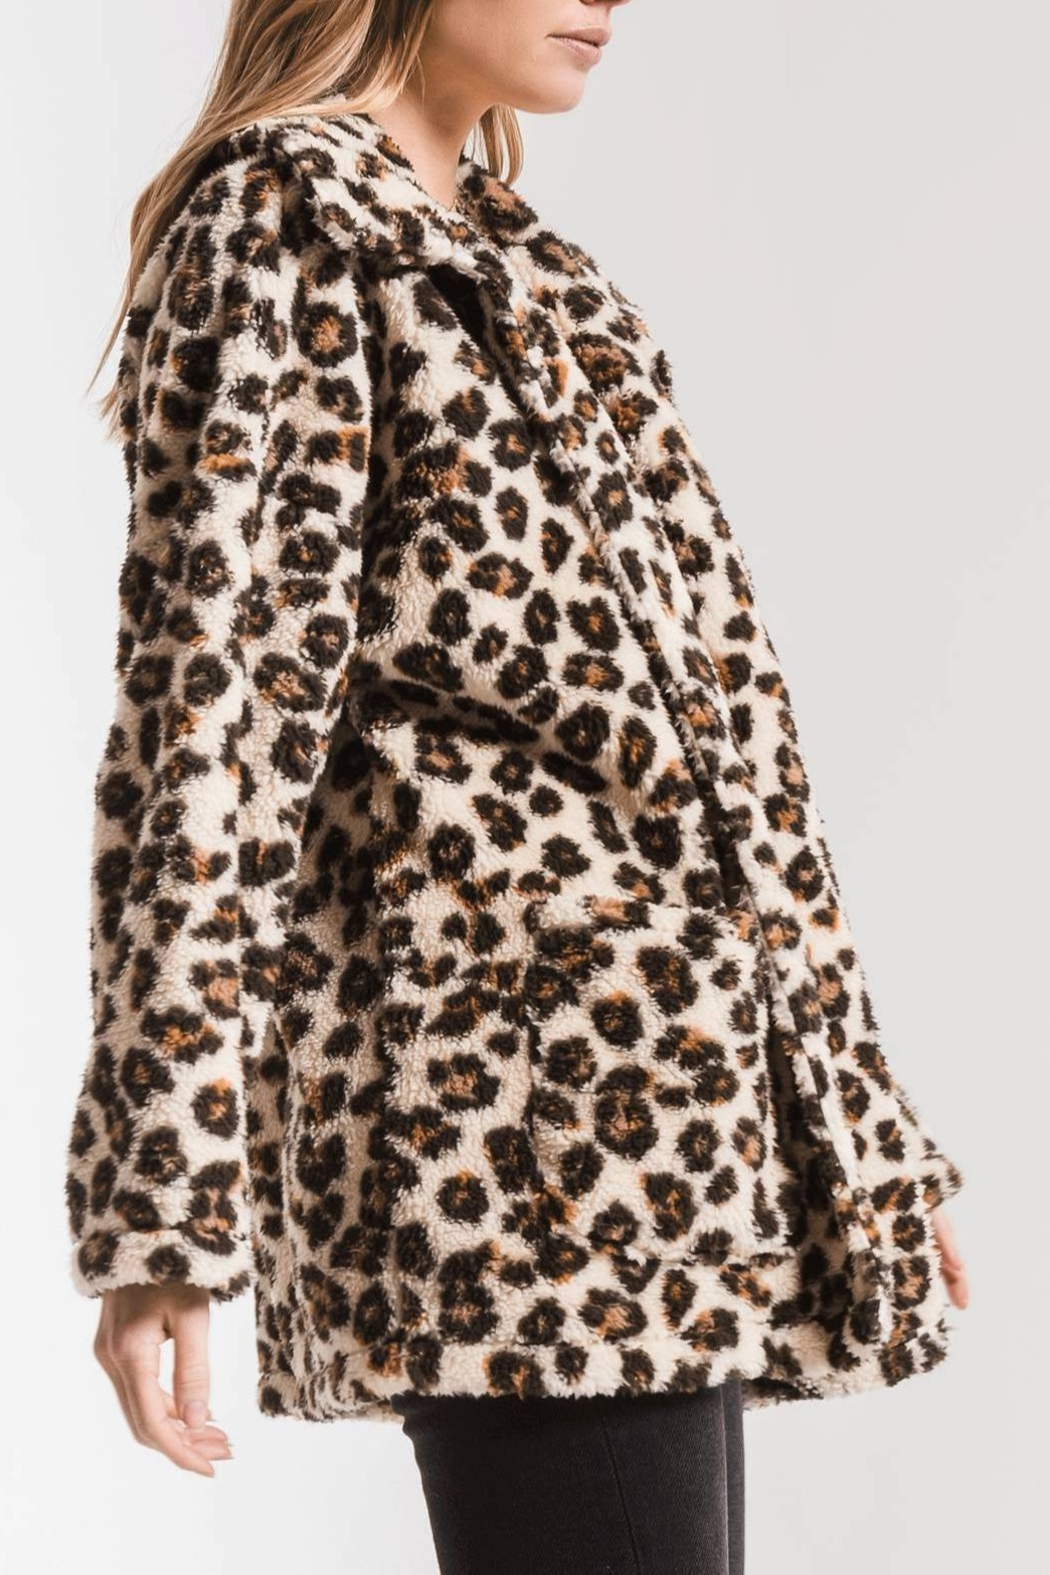 z supply Leopard Sherpa TB Coat - Front Full Image